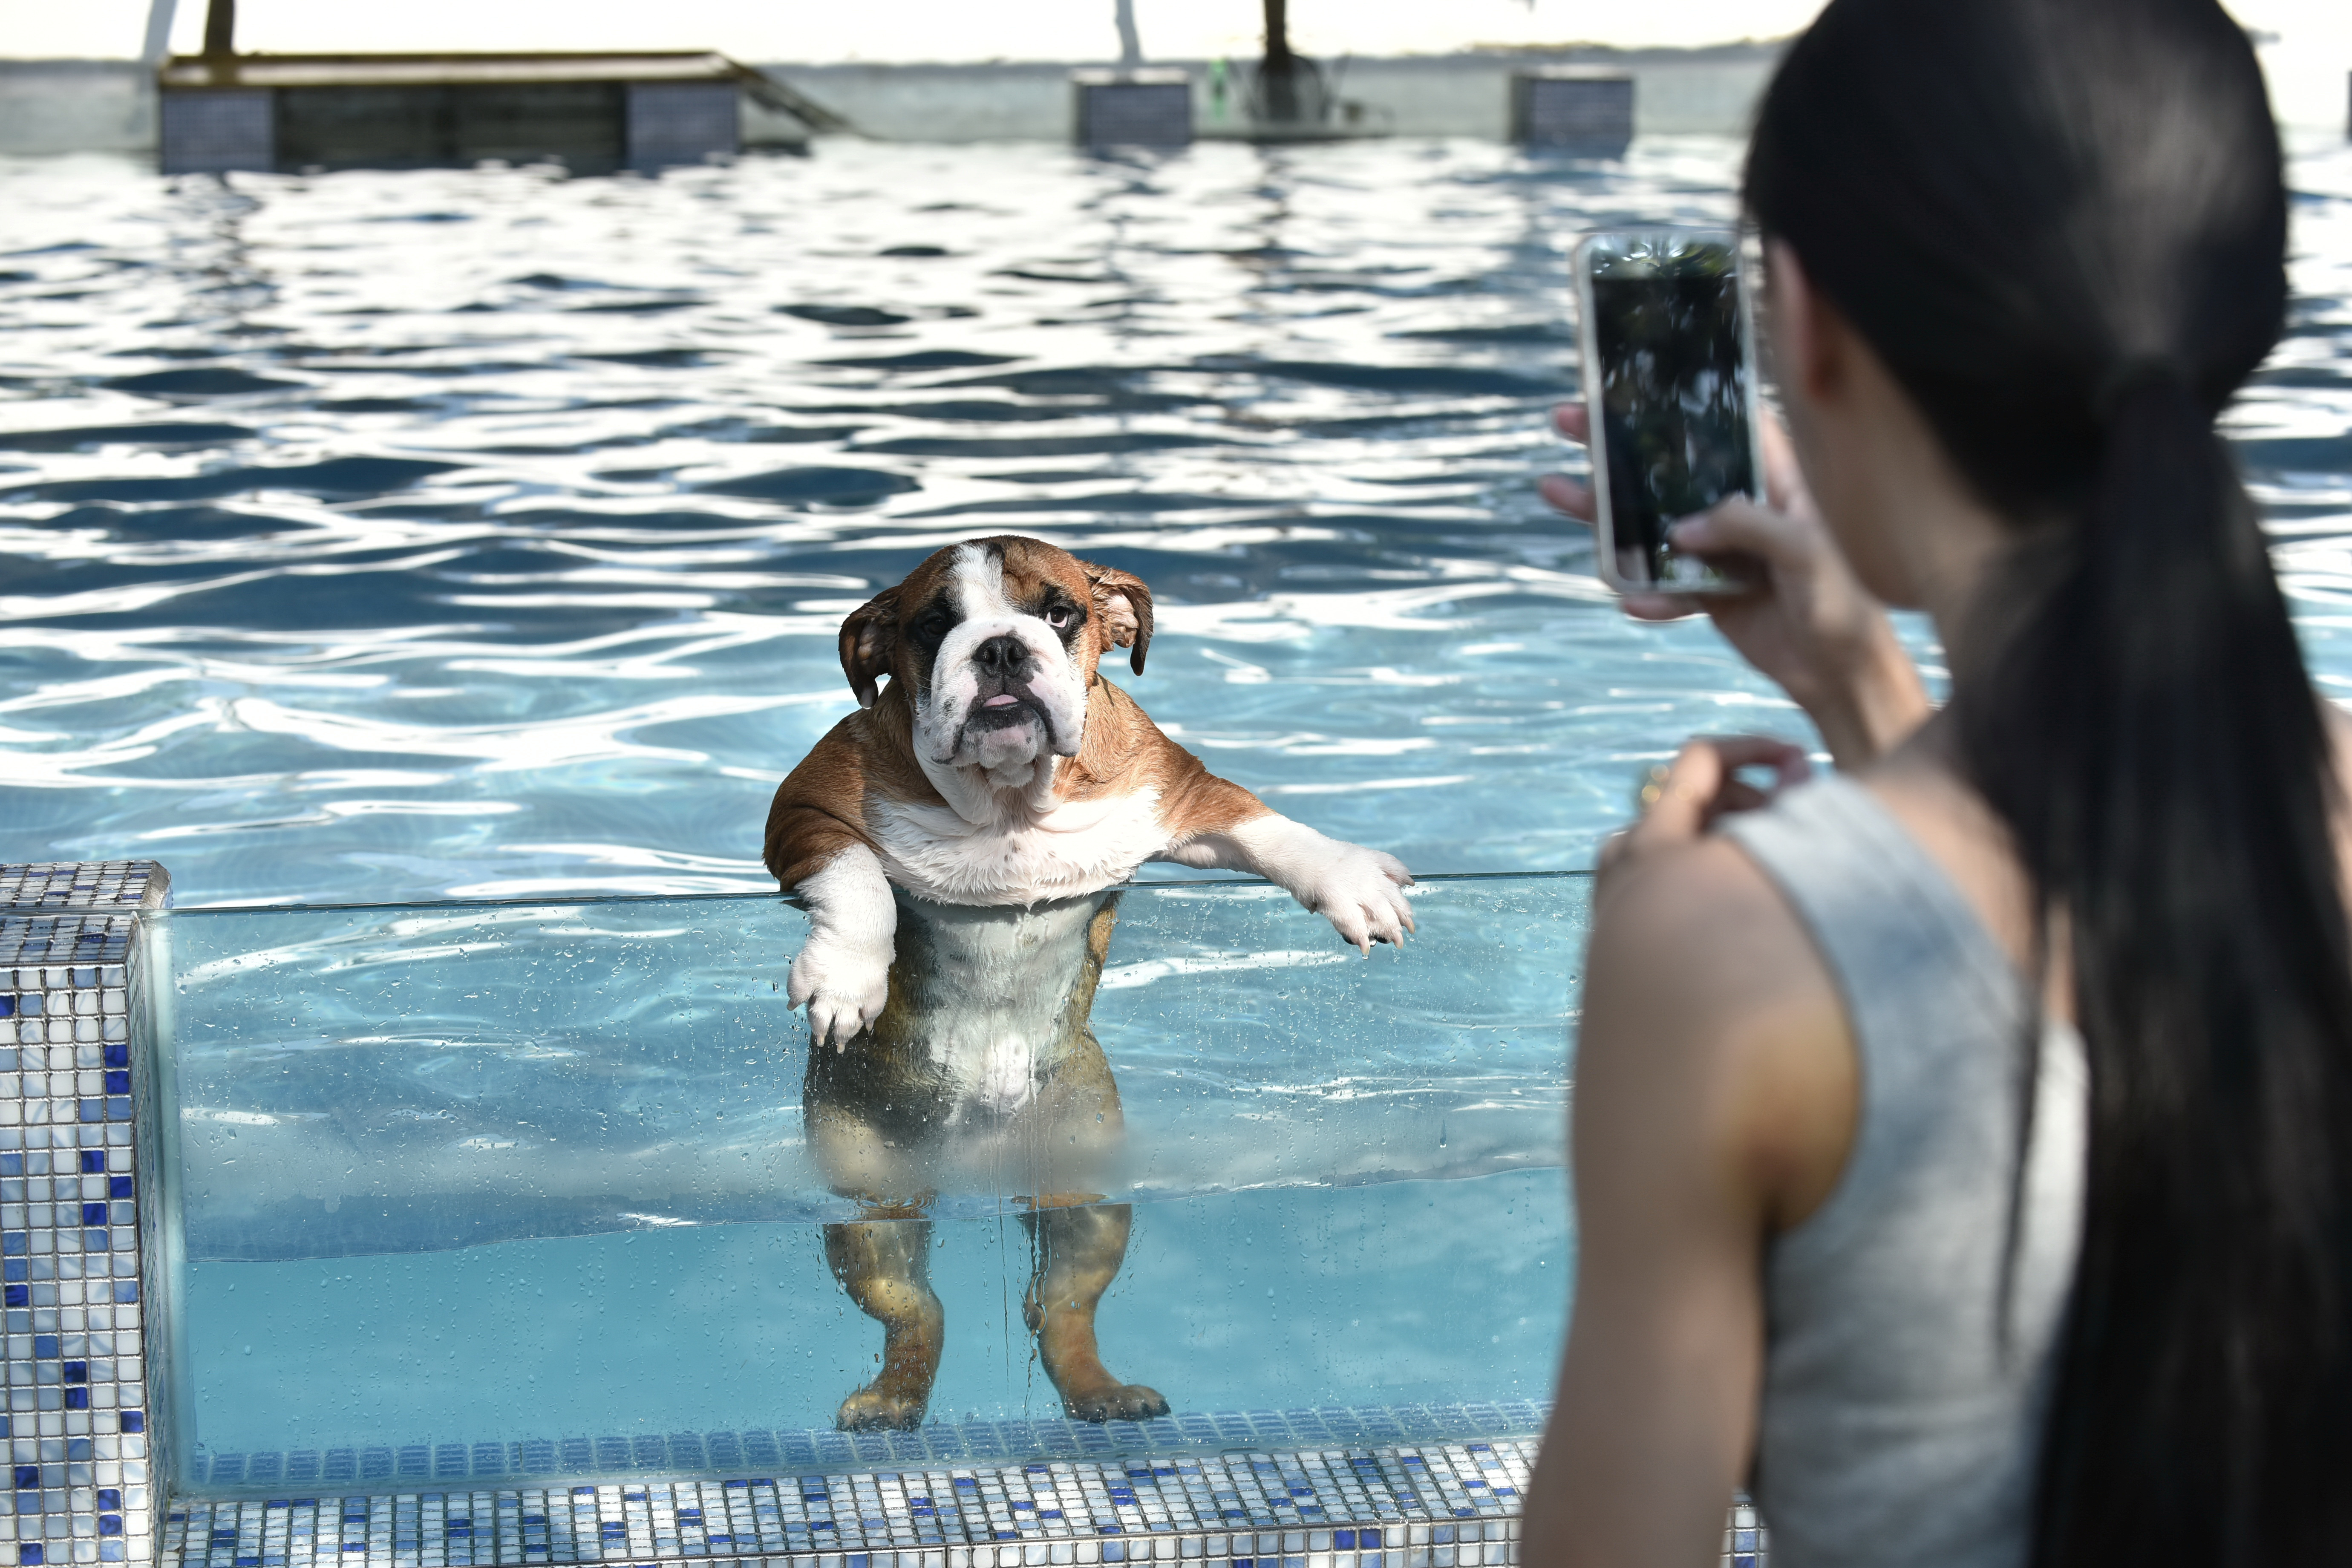 An owner takes a picture of her dog as it climbs up on a glass panel while swimming at a pool for dogs in Chengdu, China, on Aug. 16, 2016.